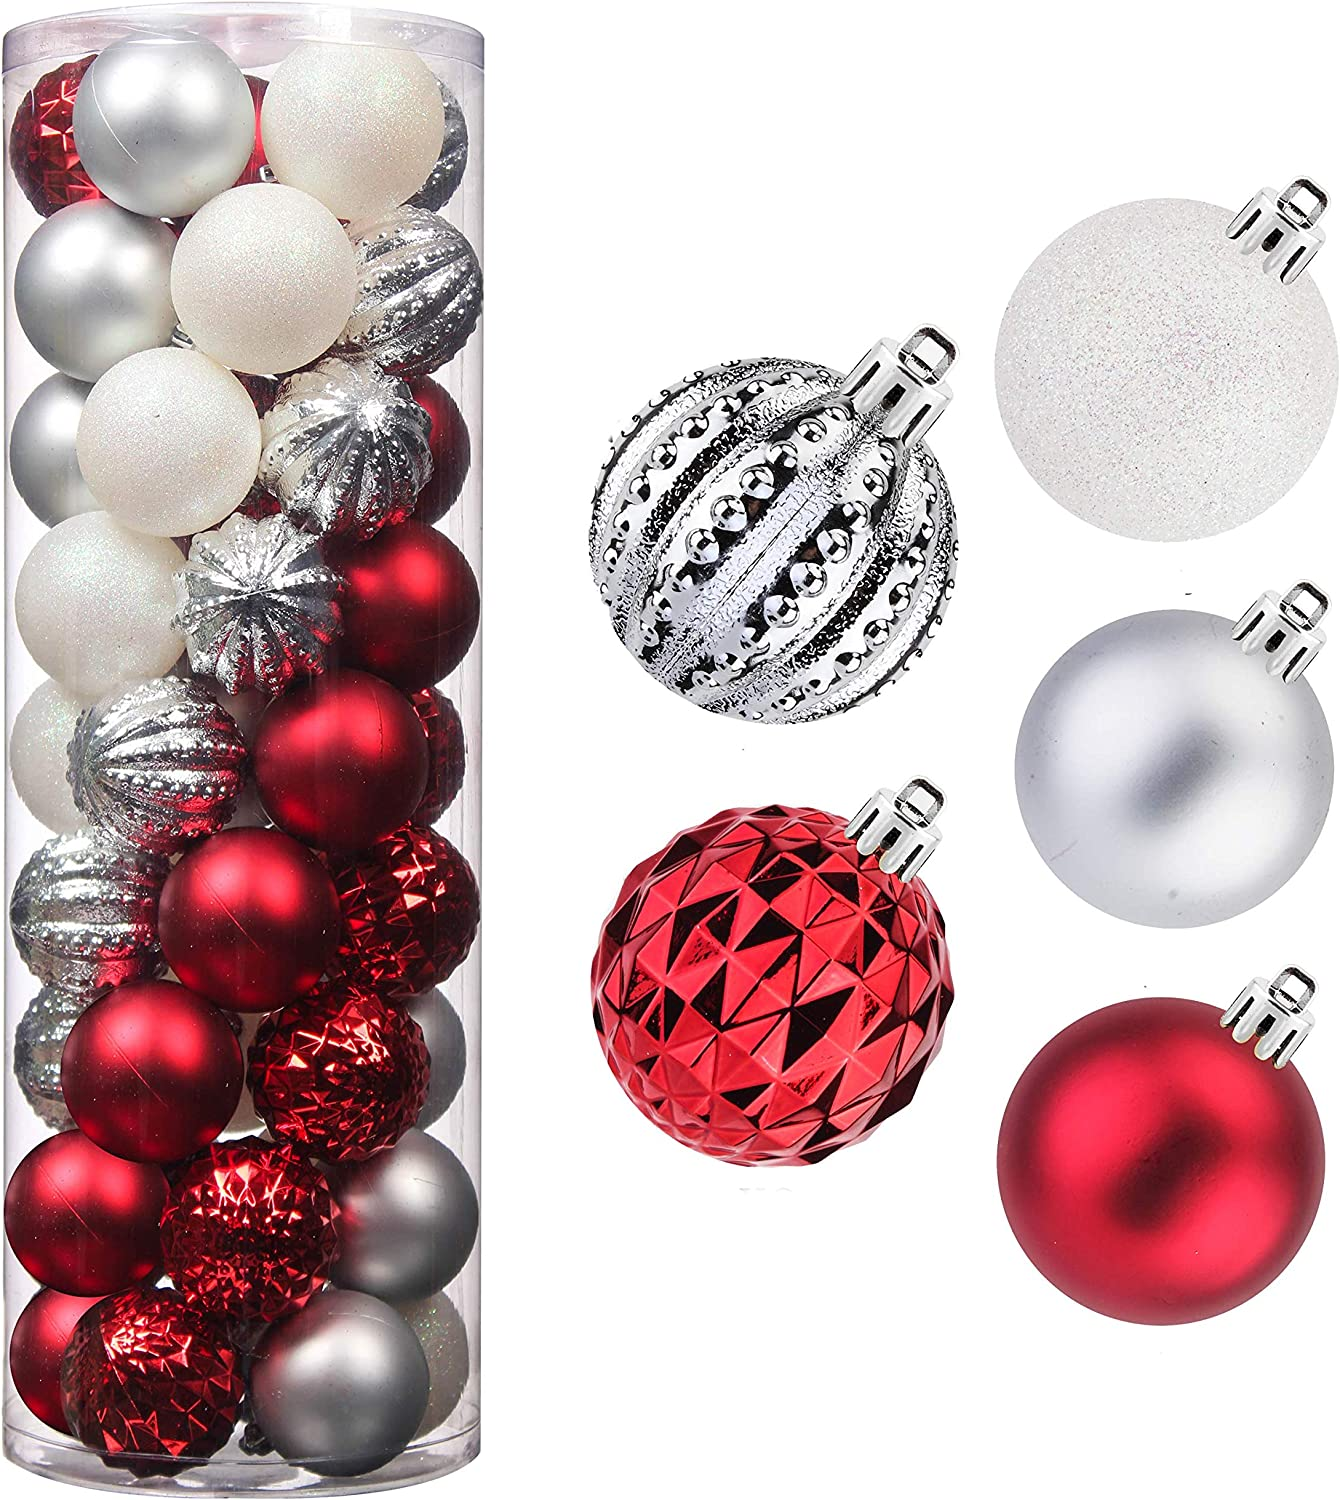 Christmas Balls,45Pcs 2.36inch Glitter Christmas Tree Ornaments Hanging Christmas Home Decorations for Home House Bar Party(Red/White/Silver)